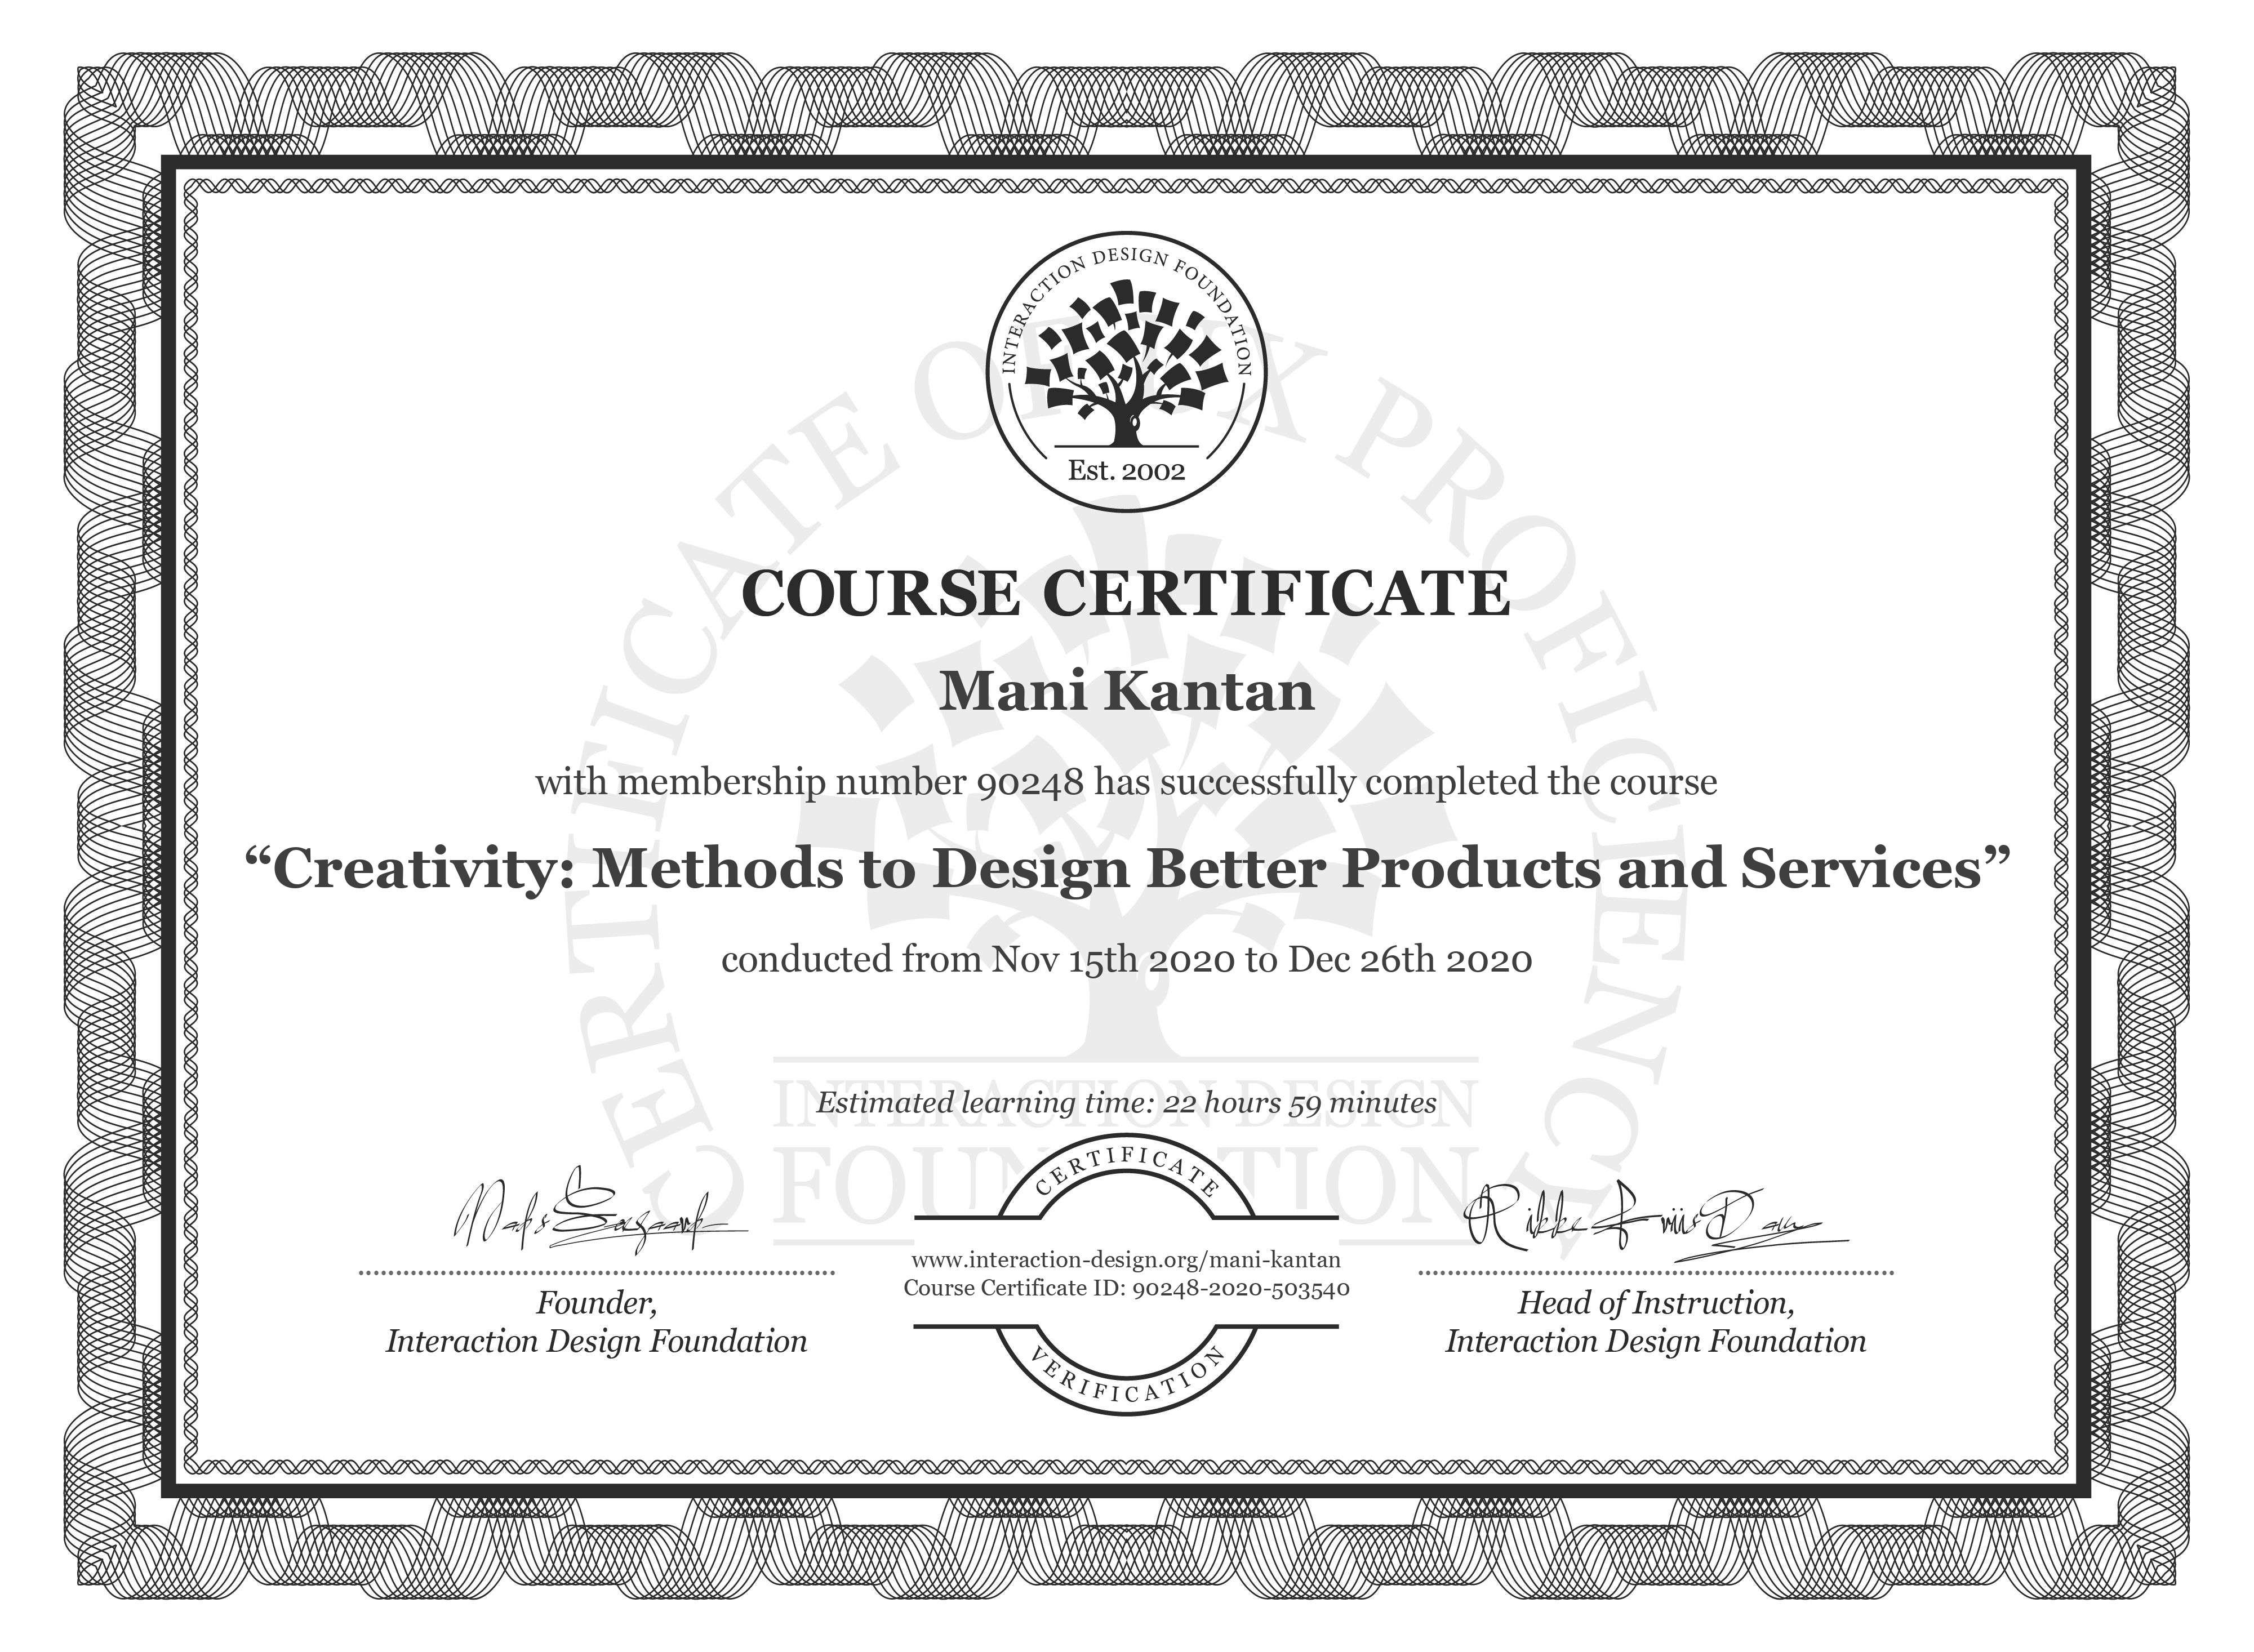 Mani Kantan's Course Certificate: Creativity: Methods to Design Better Products and Services